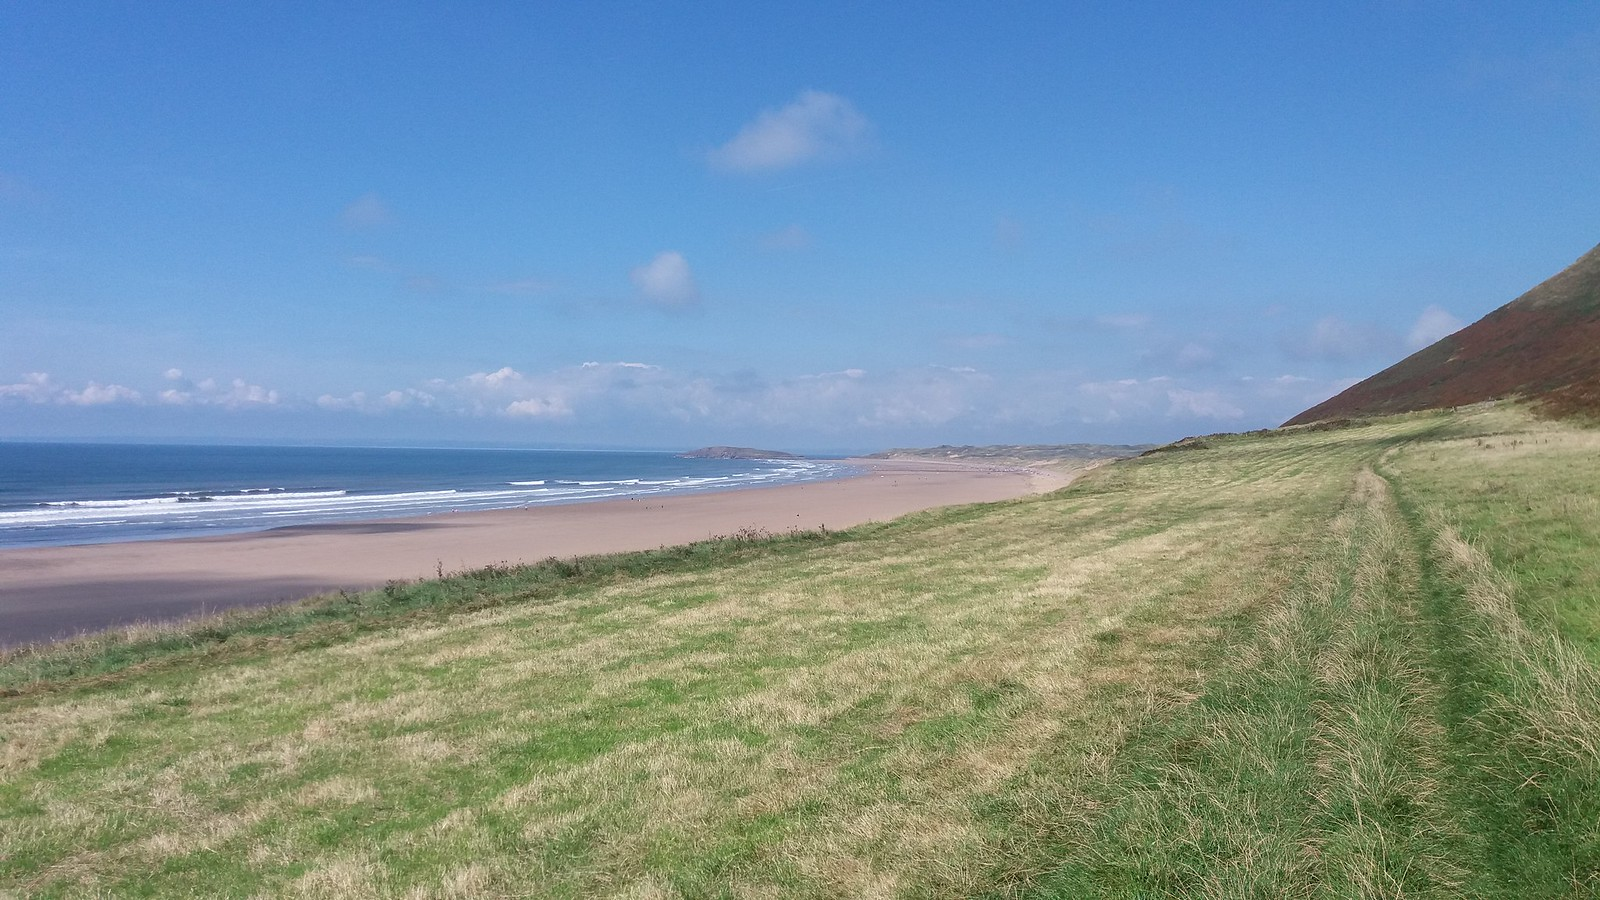 20160829_135713 Rhossili beach - bottom of hill path